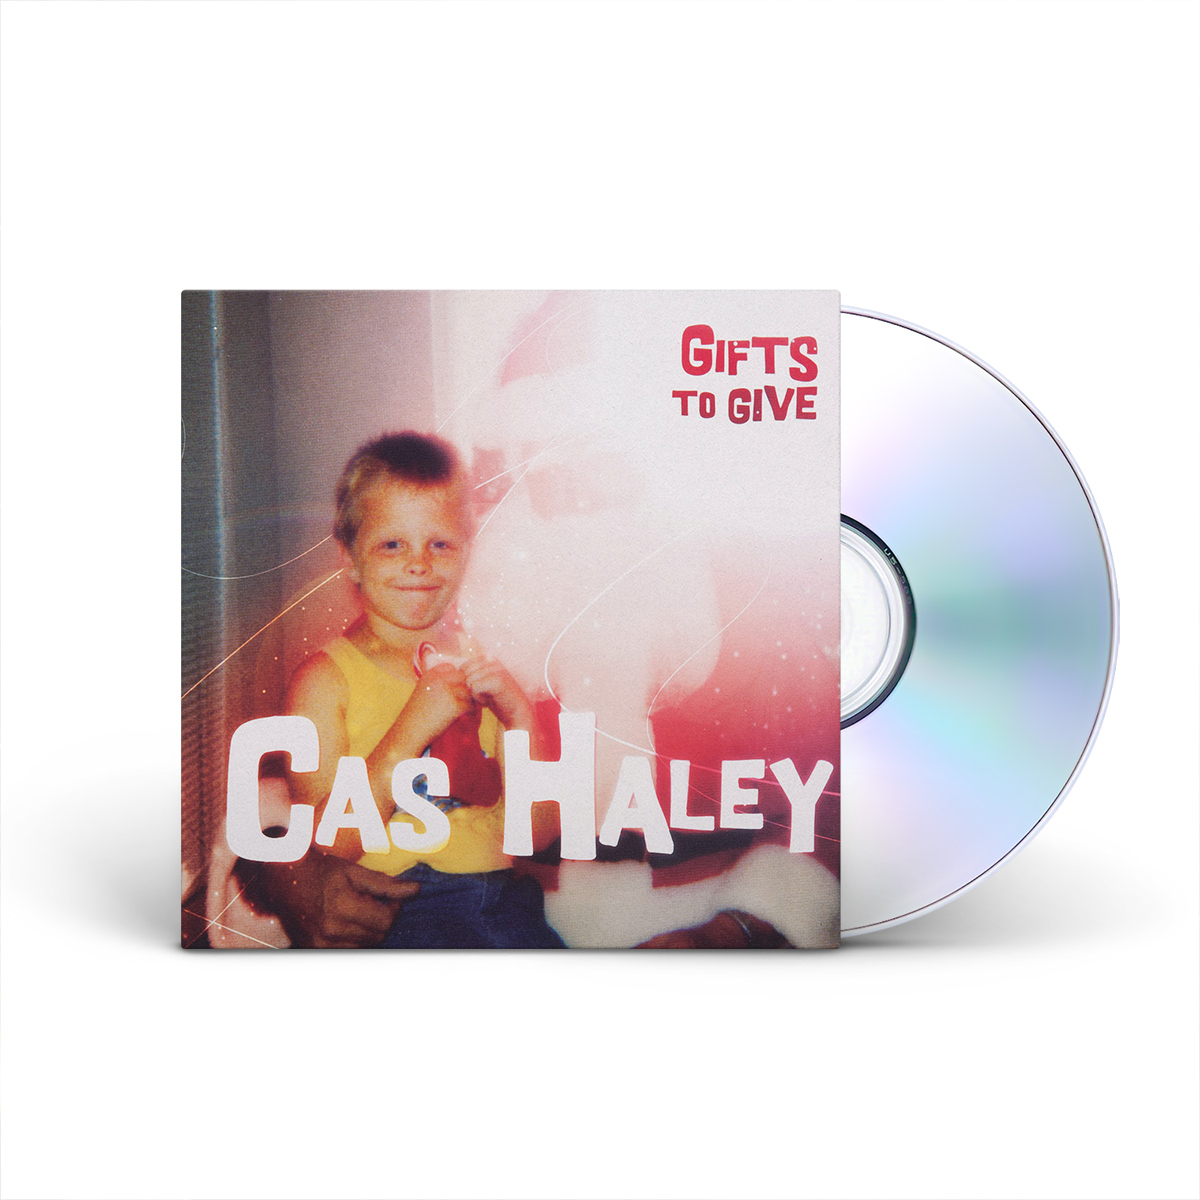 Cas Haley - Gifts To Give EP